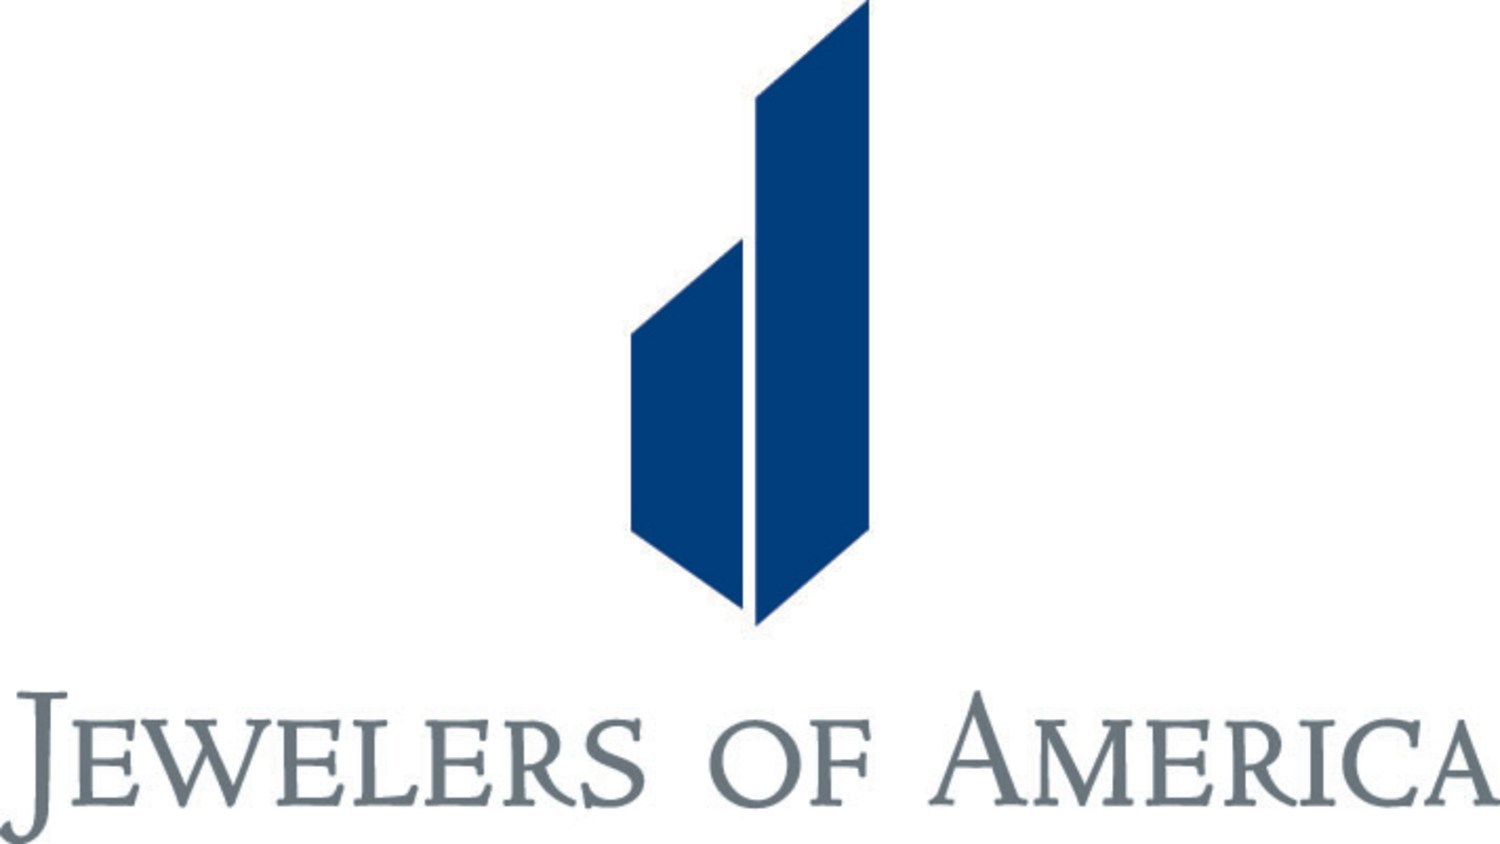 Jewelers of America is the national trade association for businesses serving the fine jewelry marketplace